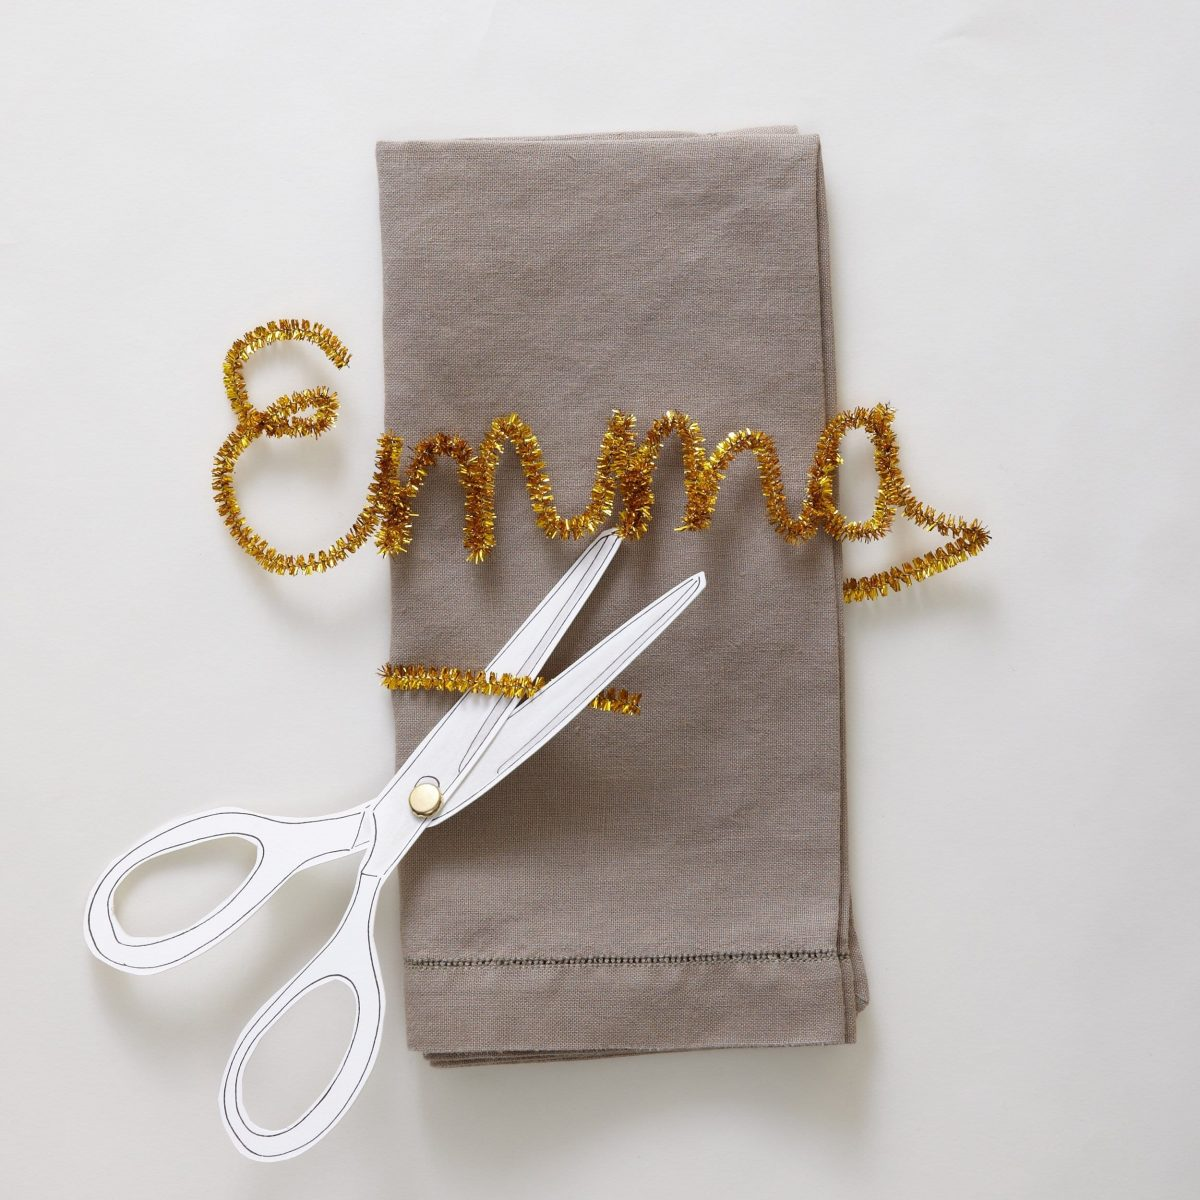 Darcy Miller Designs, Darcy Miller, Milestone, Birthday, Party, Pipecleaner craft, placecard, place card, napkin ring, DIY